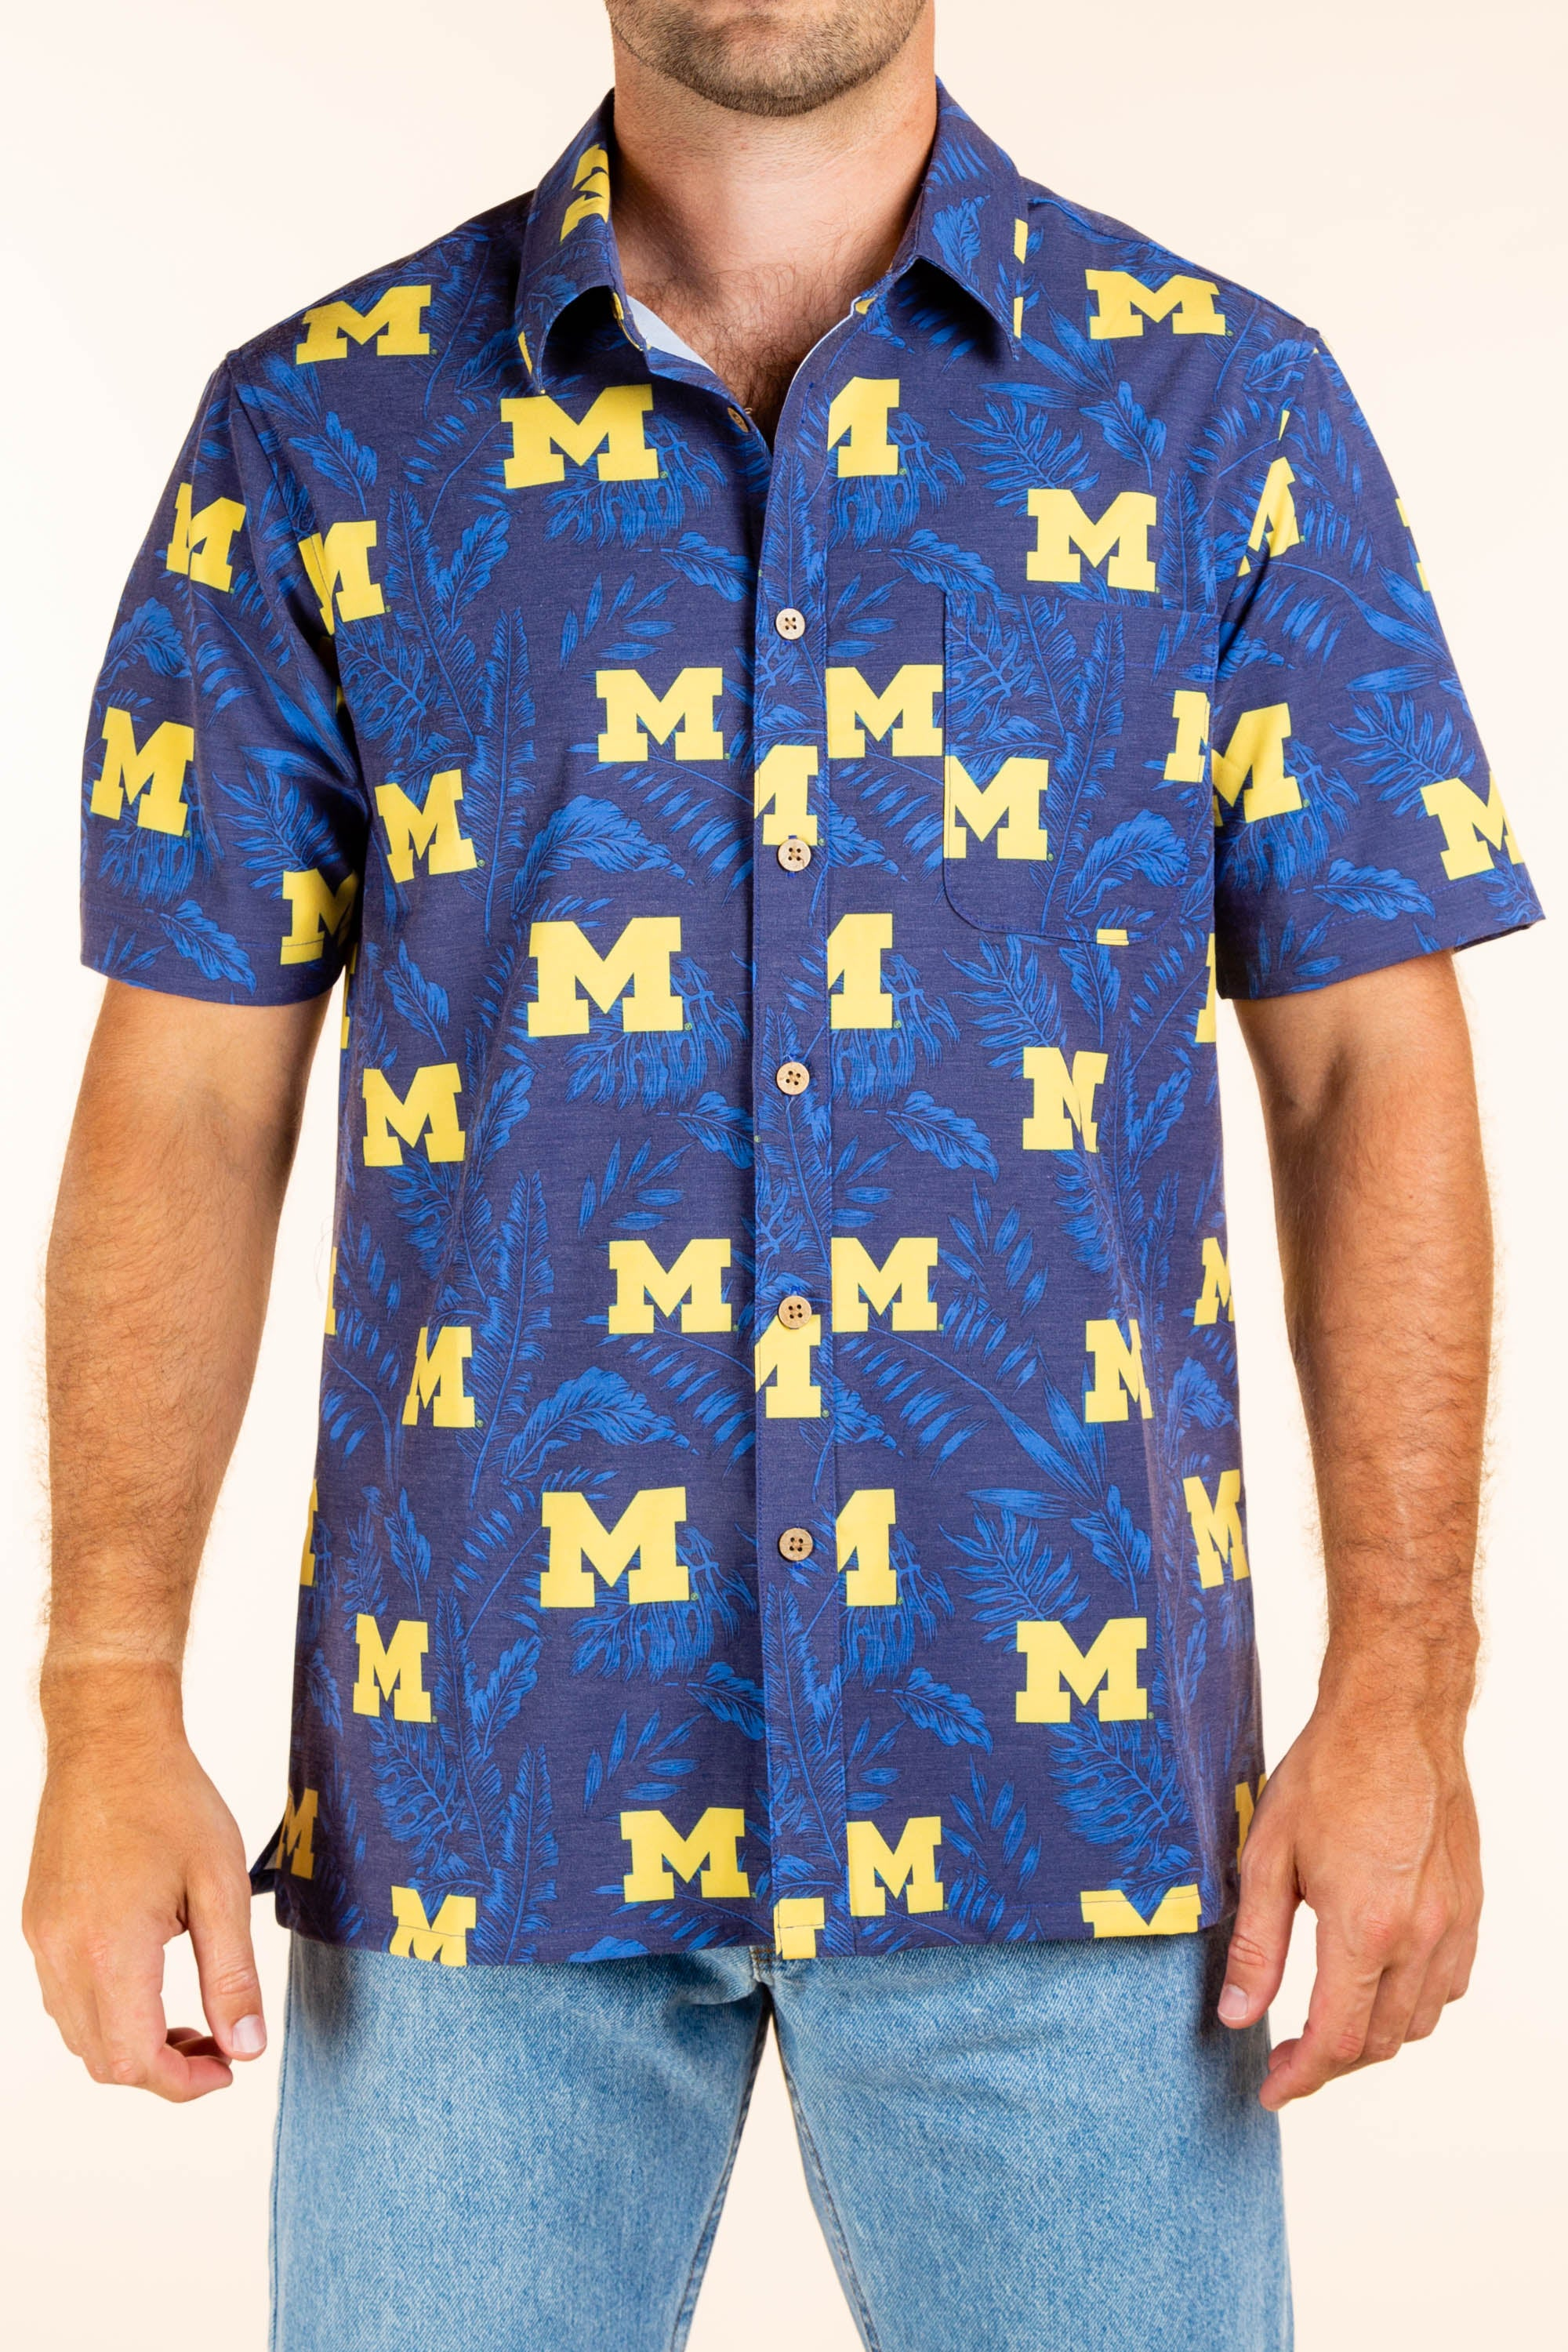 Men's University of Michigan Tailgating Party Shirt